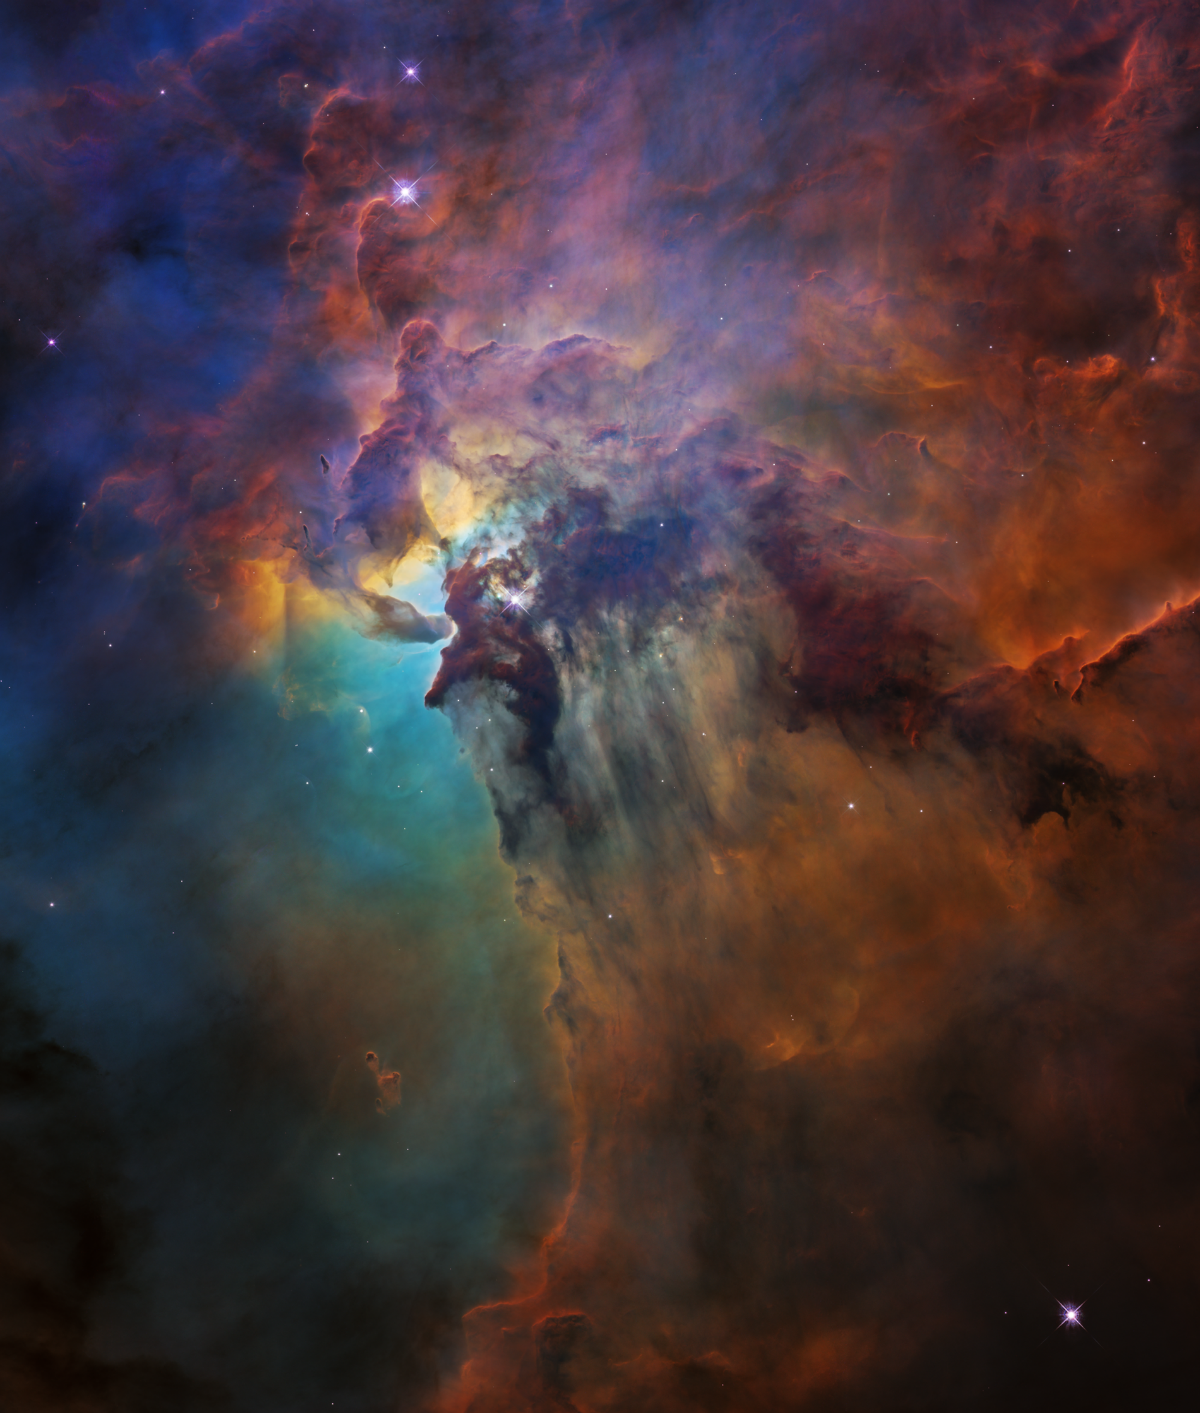 Watch This Incredible Video Of The Lagoon Nebula Captured By Hubble